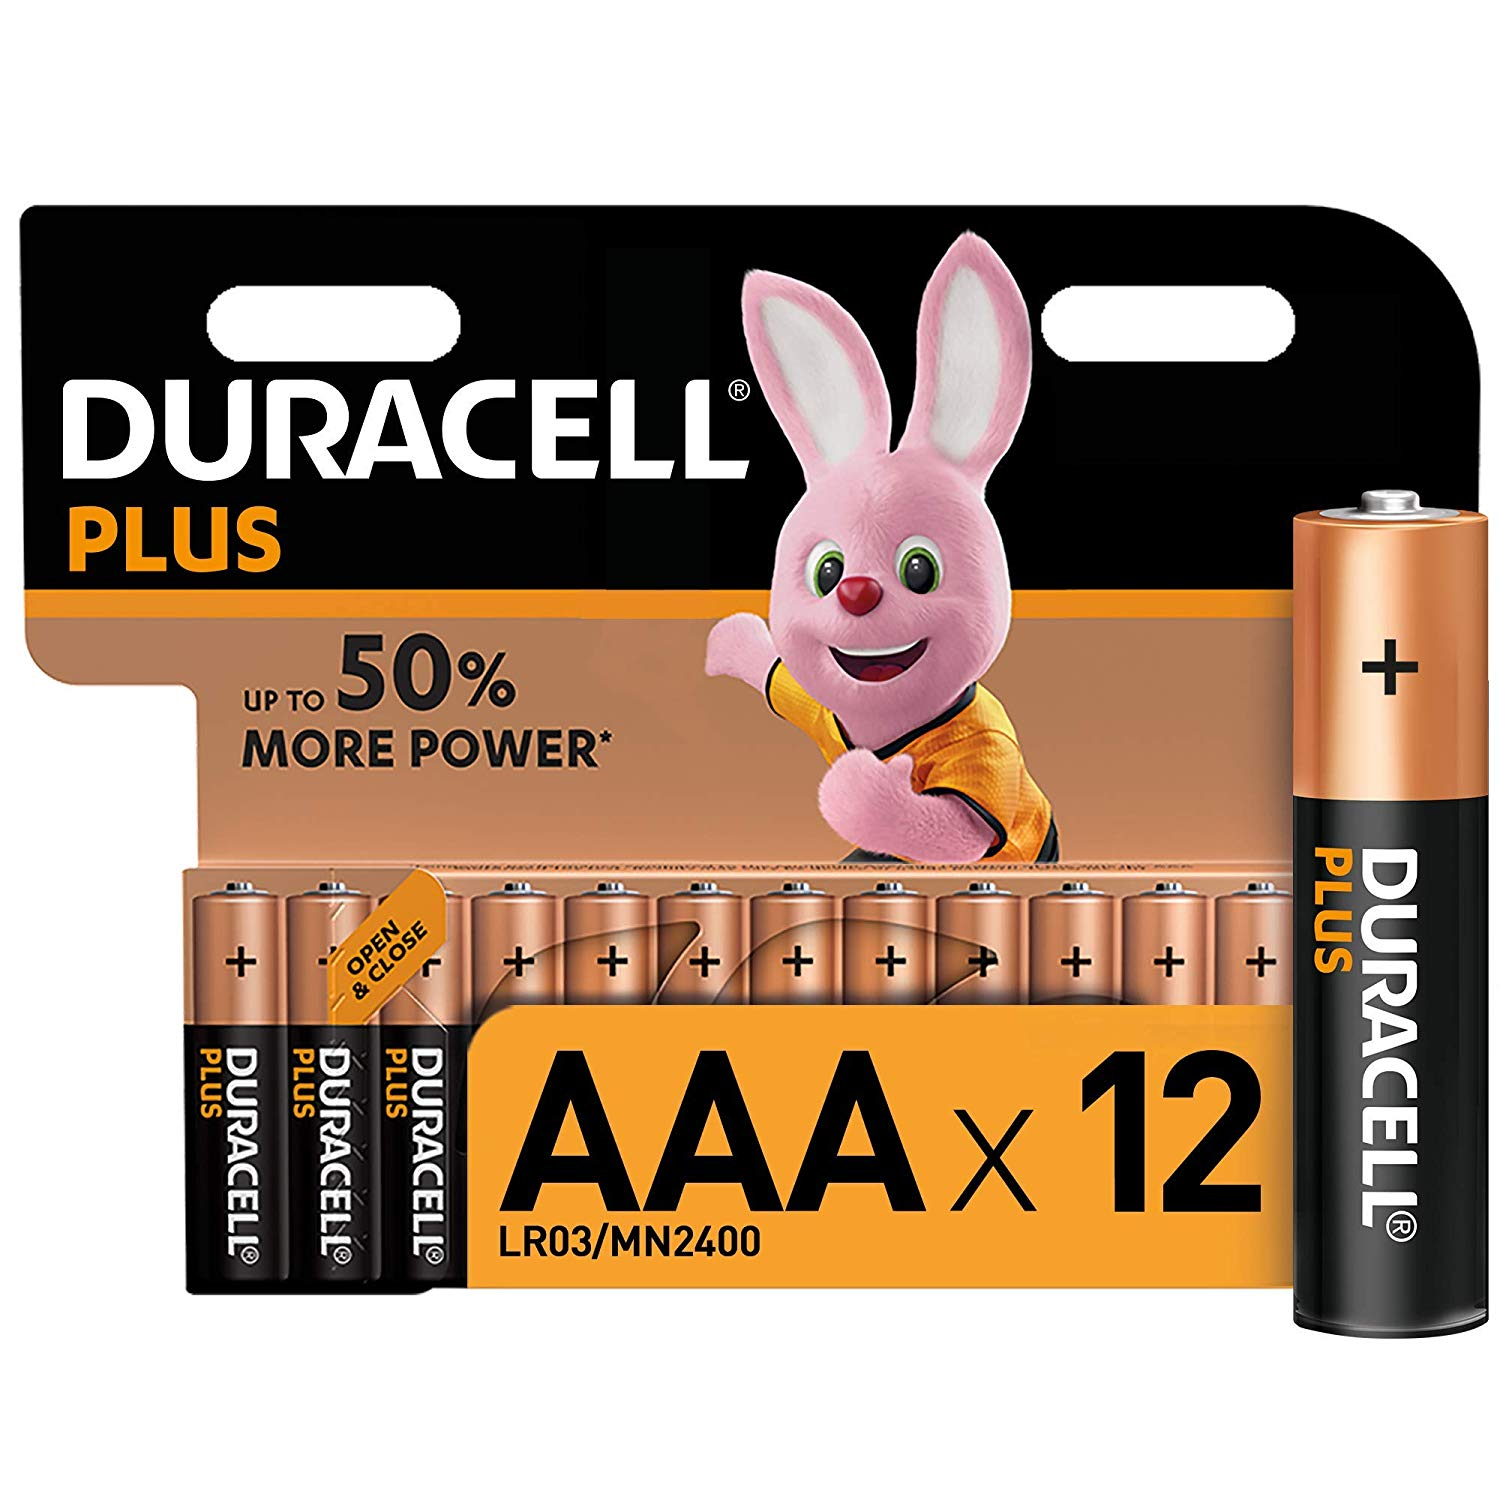 Duracell Plus AAA Alkaline Batteries, 1.5 V Pack of 12